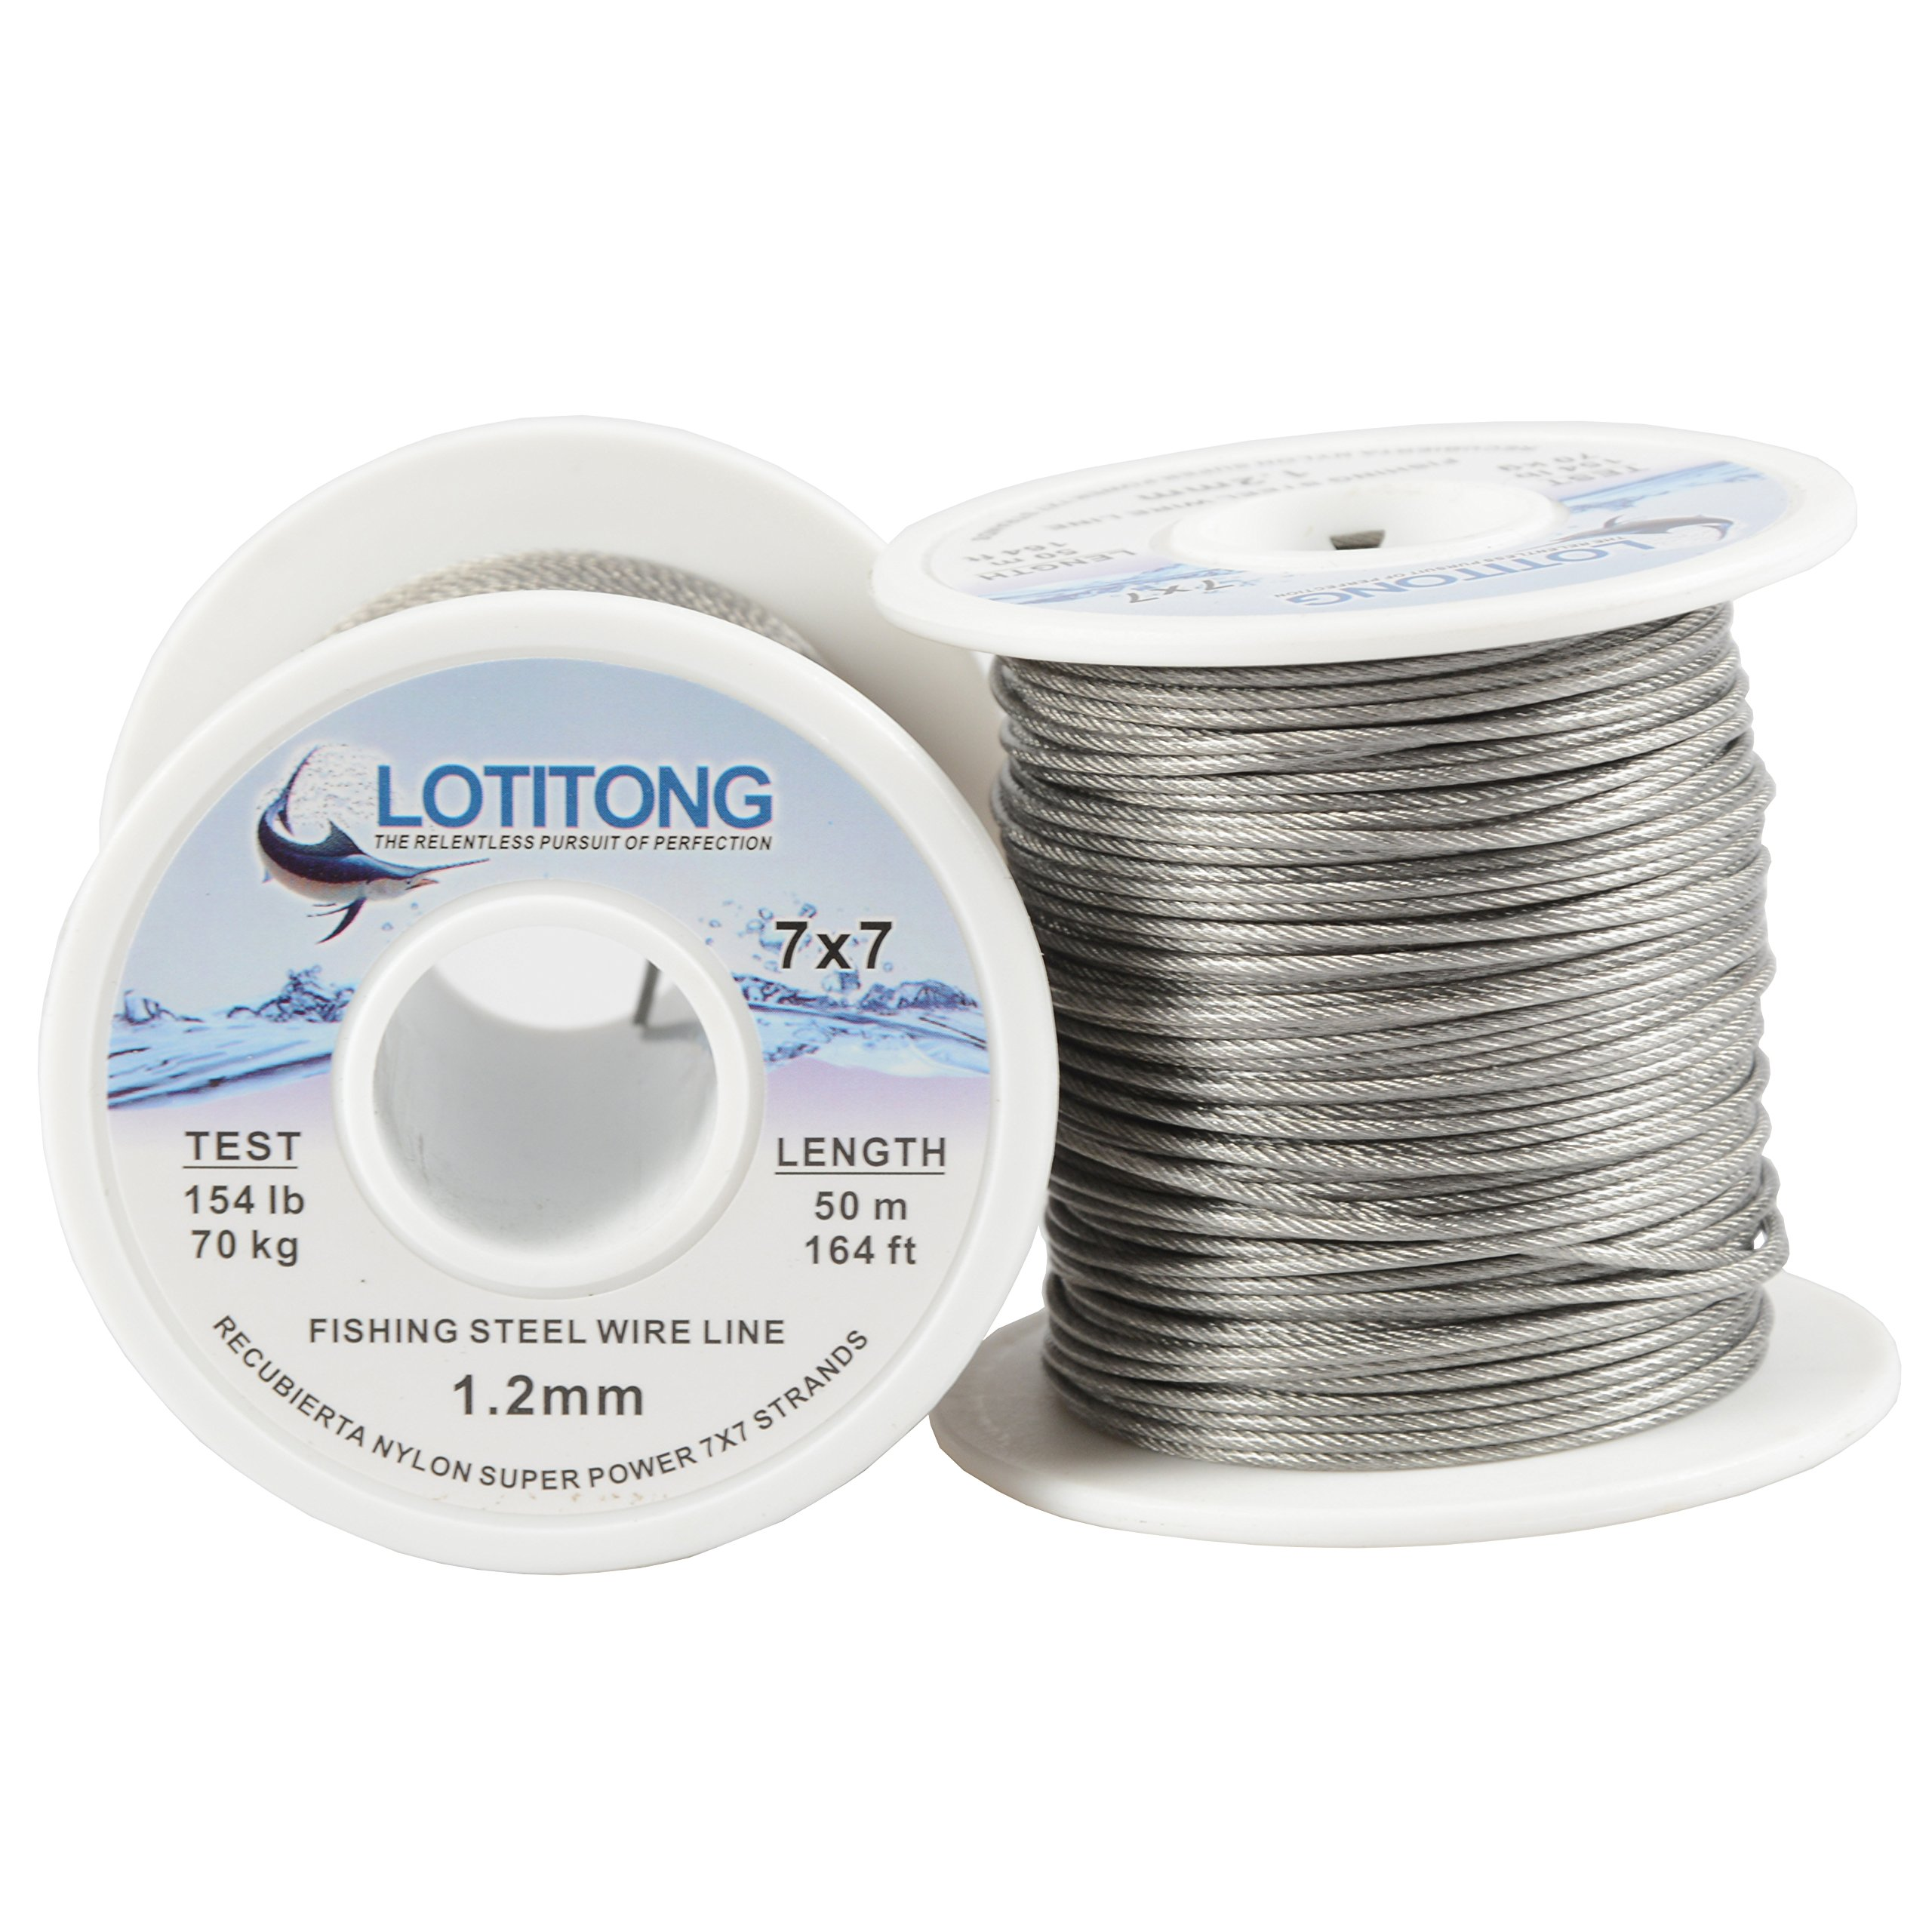 LOTITONG Super power 154LB 1.2mm fishing steel wire line 7x7 49 strands Trace Coating Wire Leader Coating Jigging Wire Lead Fish Jigging Line Fishing Wire Stainless Steel Leader Wire 50M